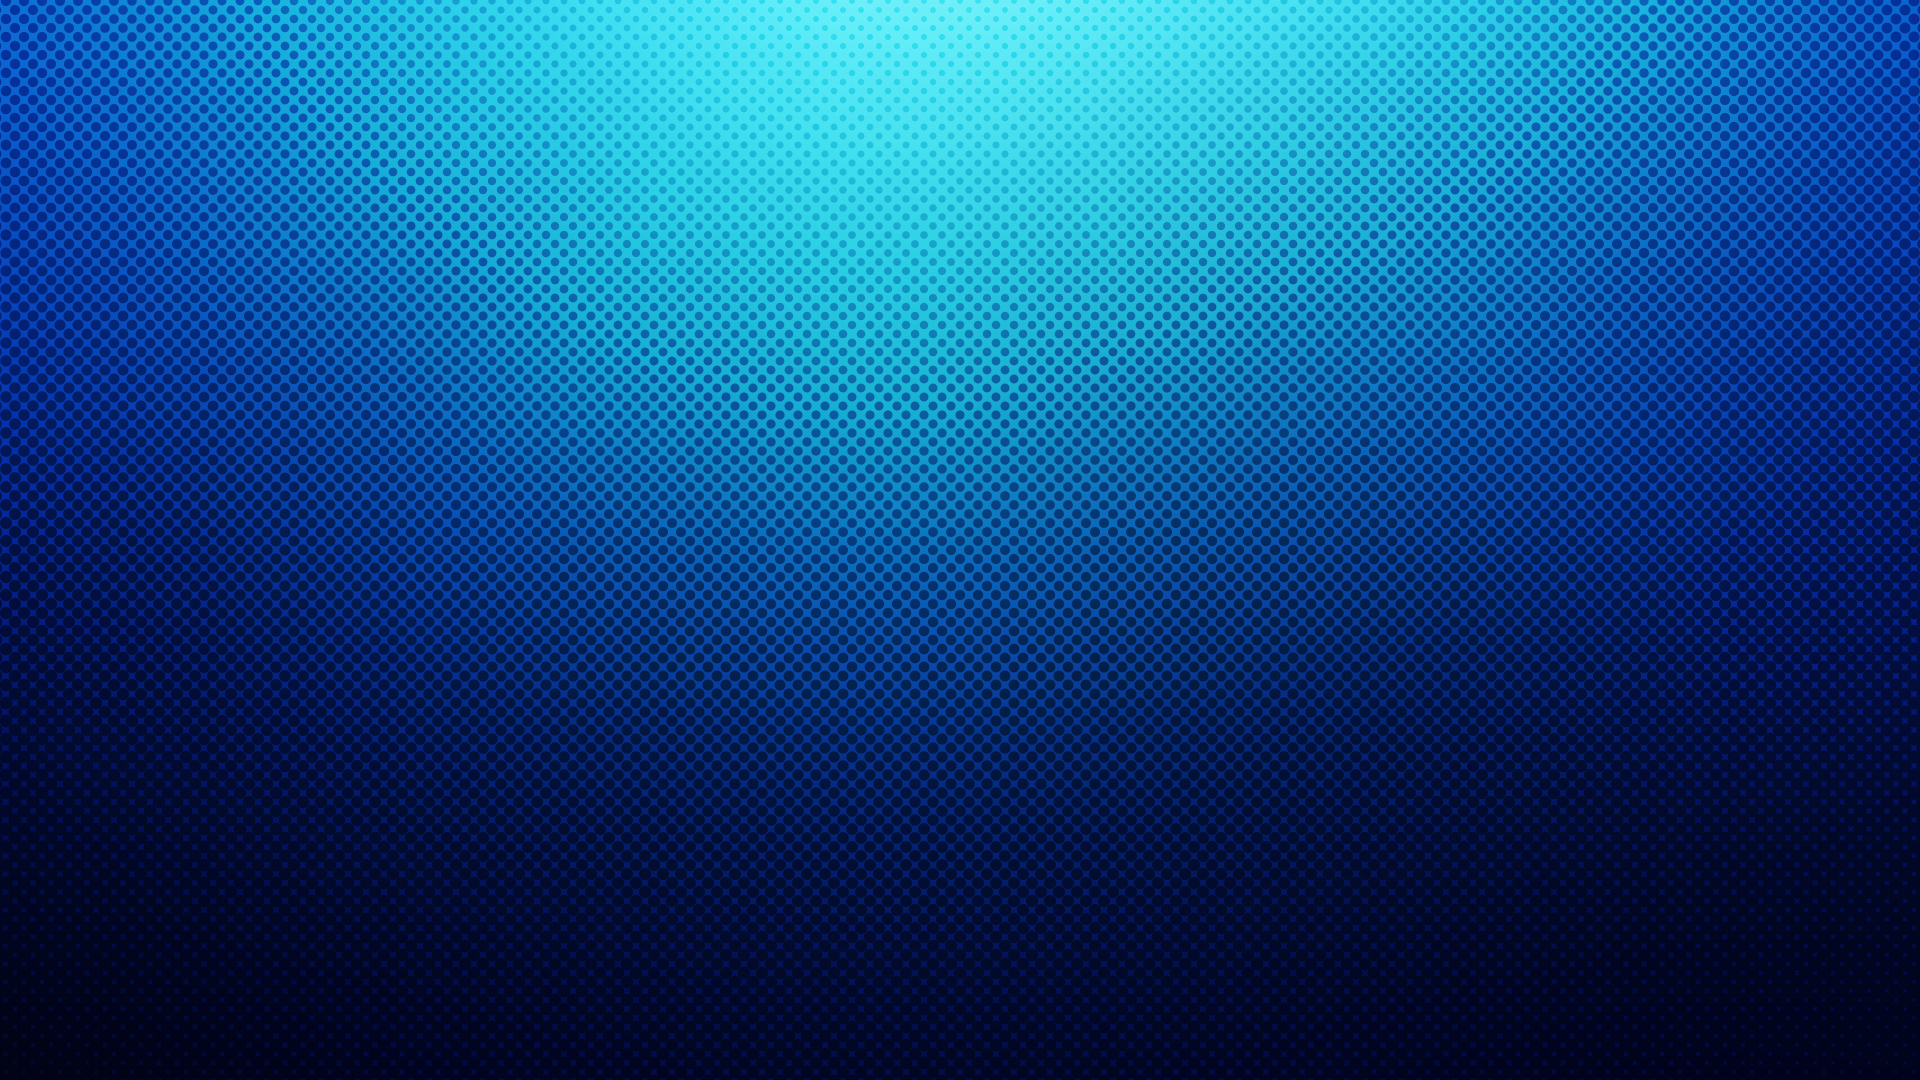 Blau hd wallpaper hintergrund 1920x1080 id 368394 for Sfondi blu hd